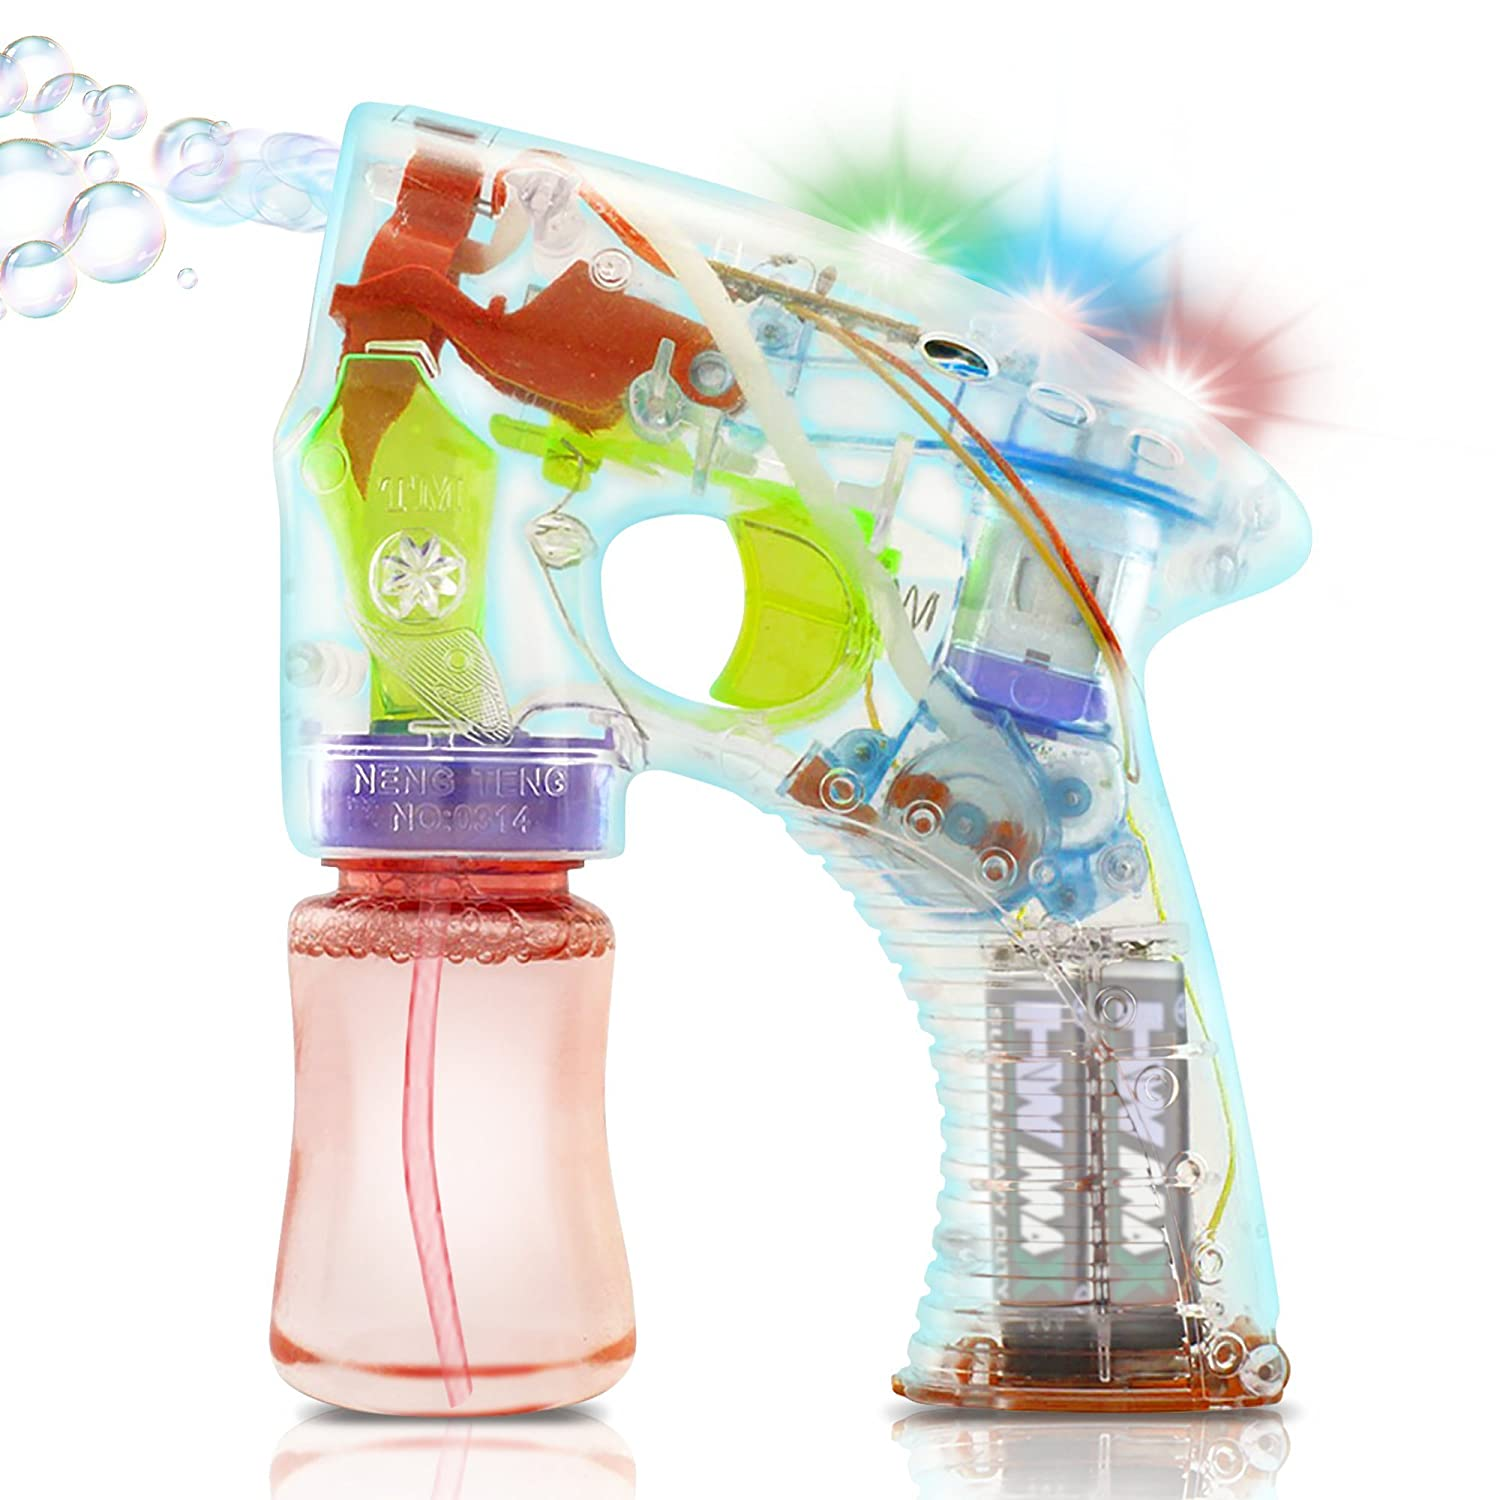 ArtCreativity Light Up Bubble Gun | Medium Lightweight Design | Perfect for Summertime | Fun Engaging and Entertaining | Party Favor Amazing Gift Idea for Boys and Girls Batteries Included